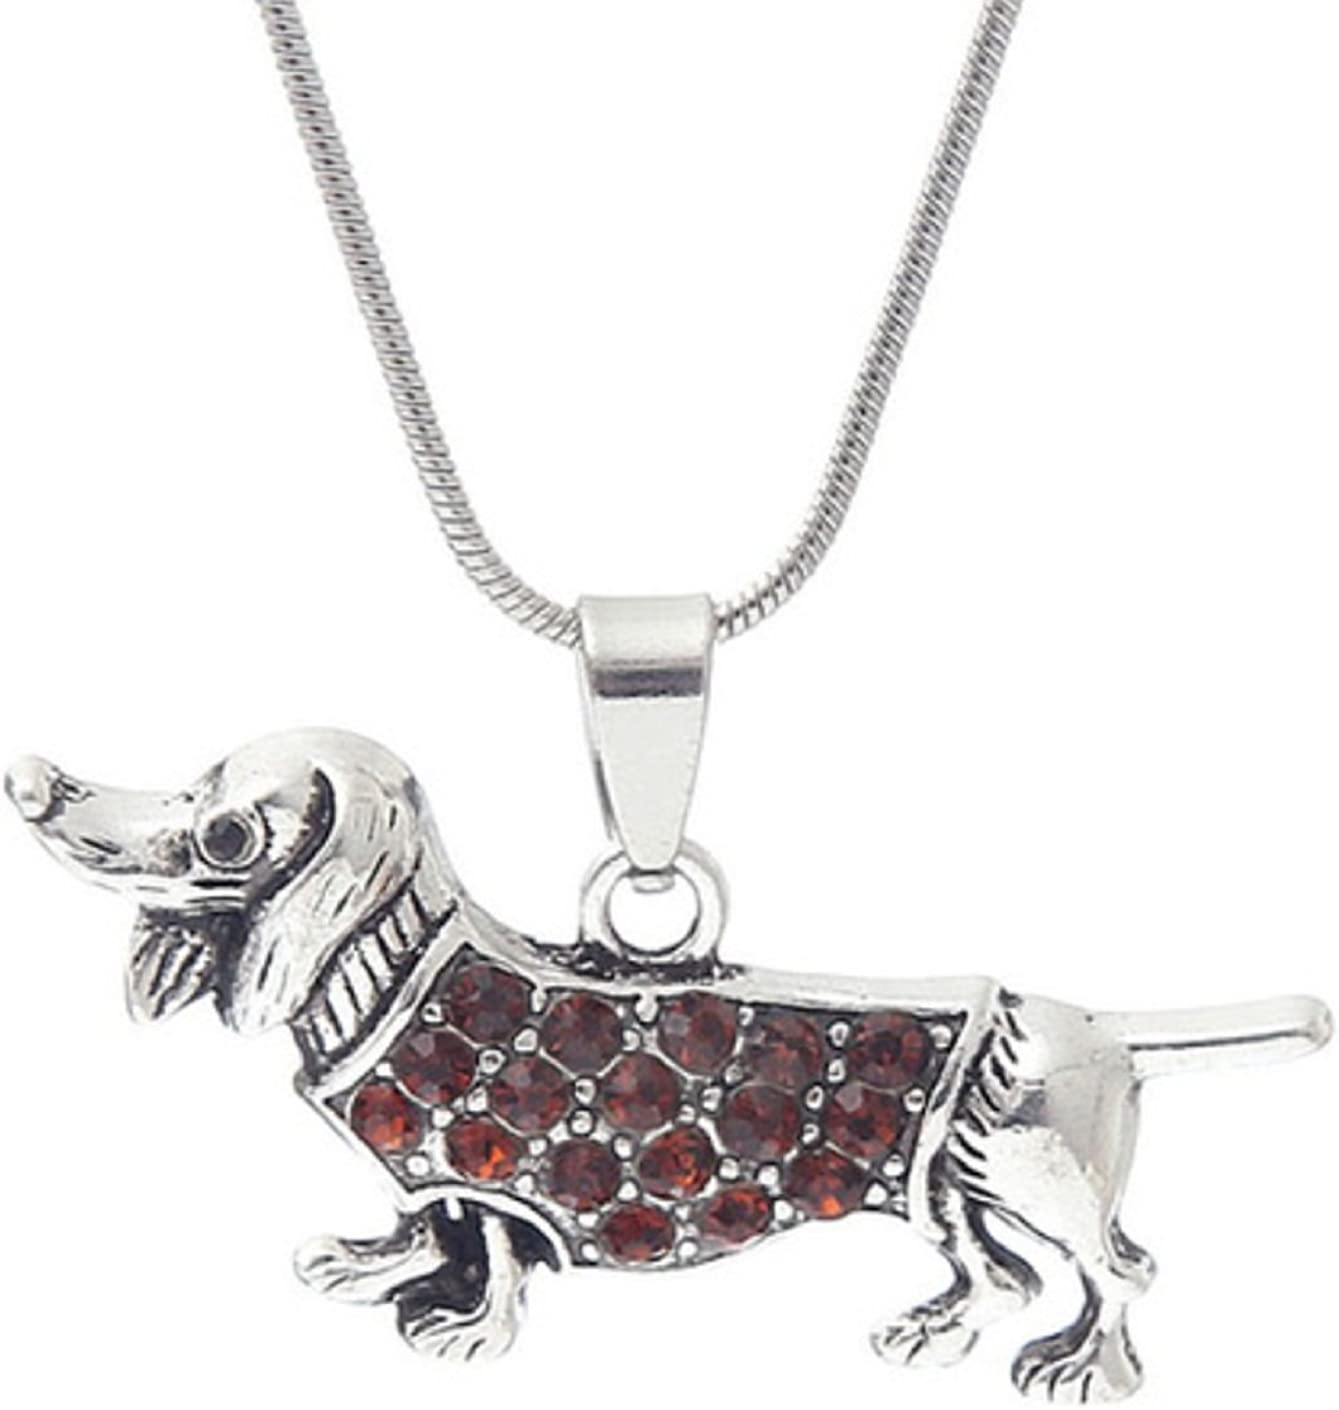 Animal Rescue Worker From the Heart Dachshund Dog 18 Necklace is Embellished in Brown Crystal Rhinestones.Perfect Gift for Your Vet or Weenie Dog Mom